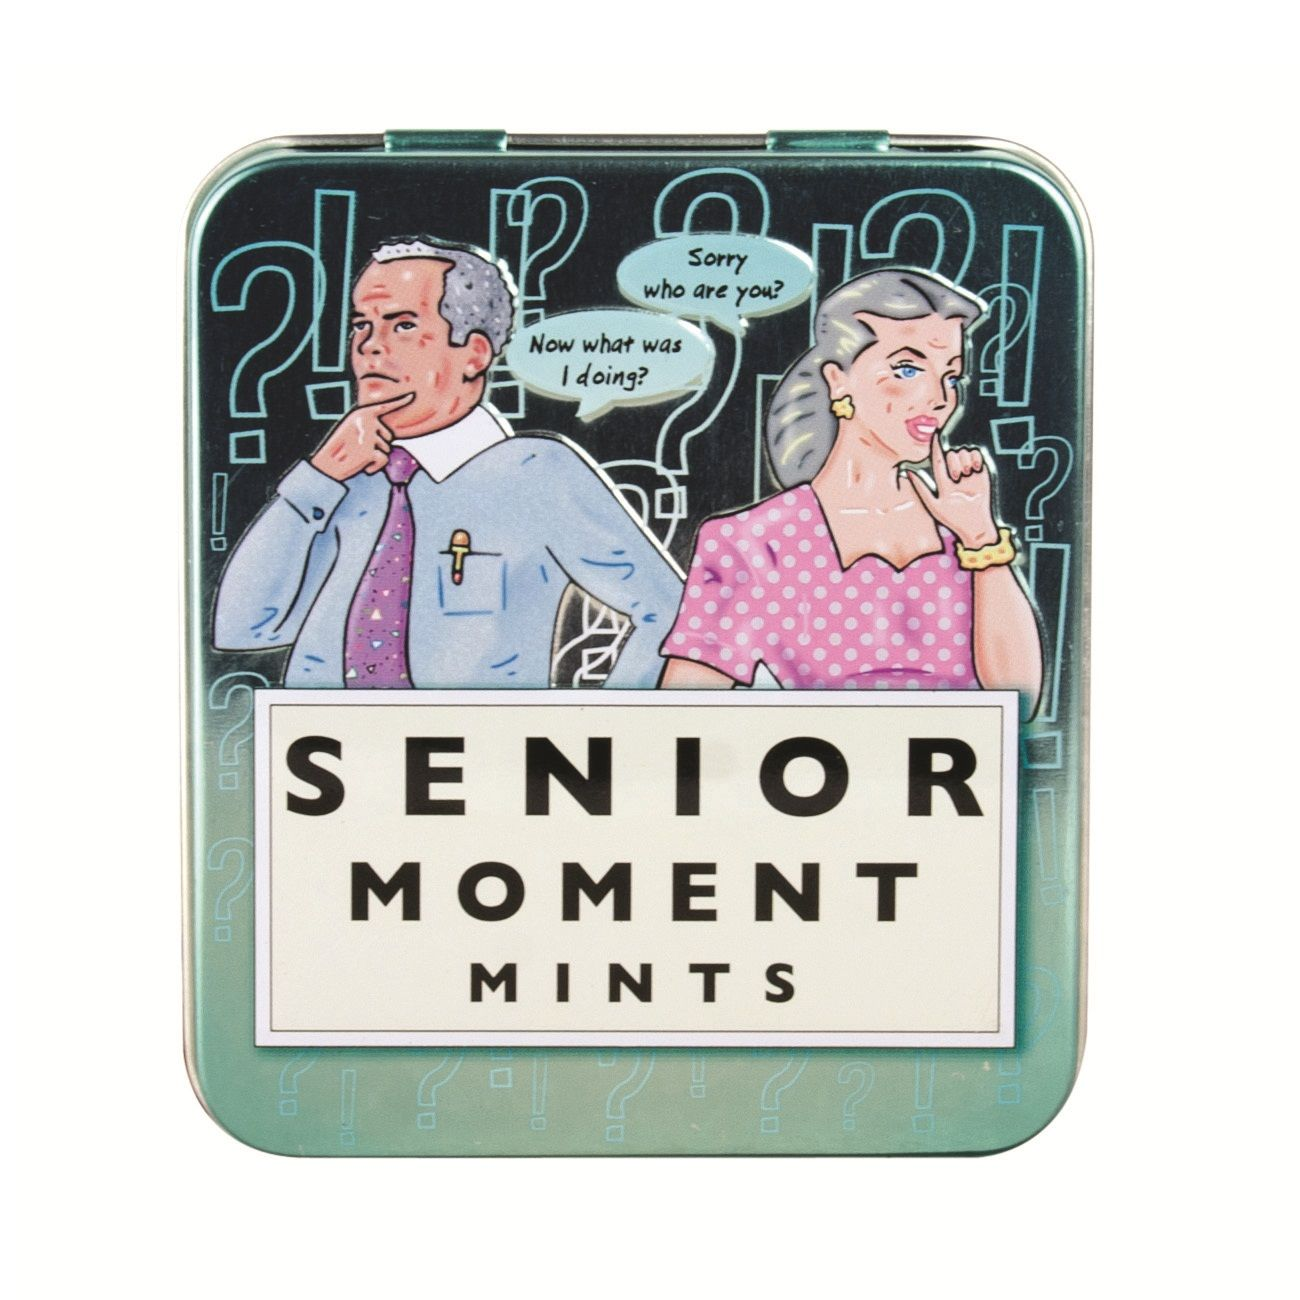 Senior Moment Novelty Sugar Free Mints Tin 45g 43509 P also Healthy Food Tips About Healthy Food additionally Gilded age political cartoons further Home Remedies For Pimples besides Vm8sd 0ii. on oil consumption cartoon